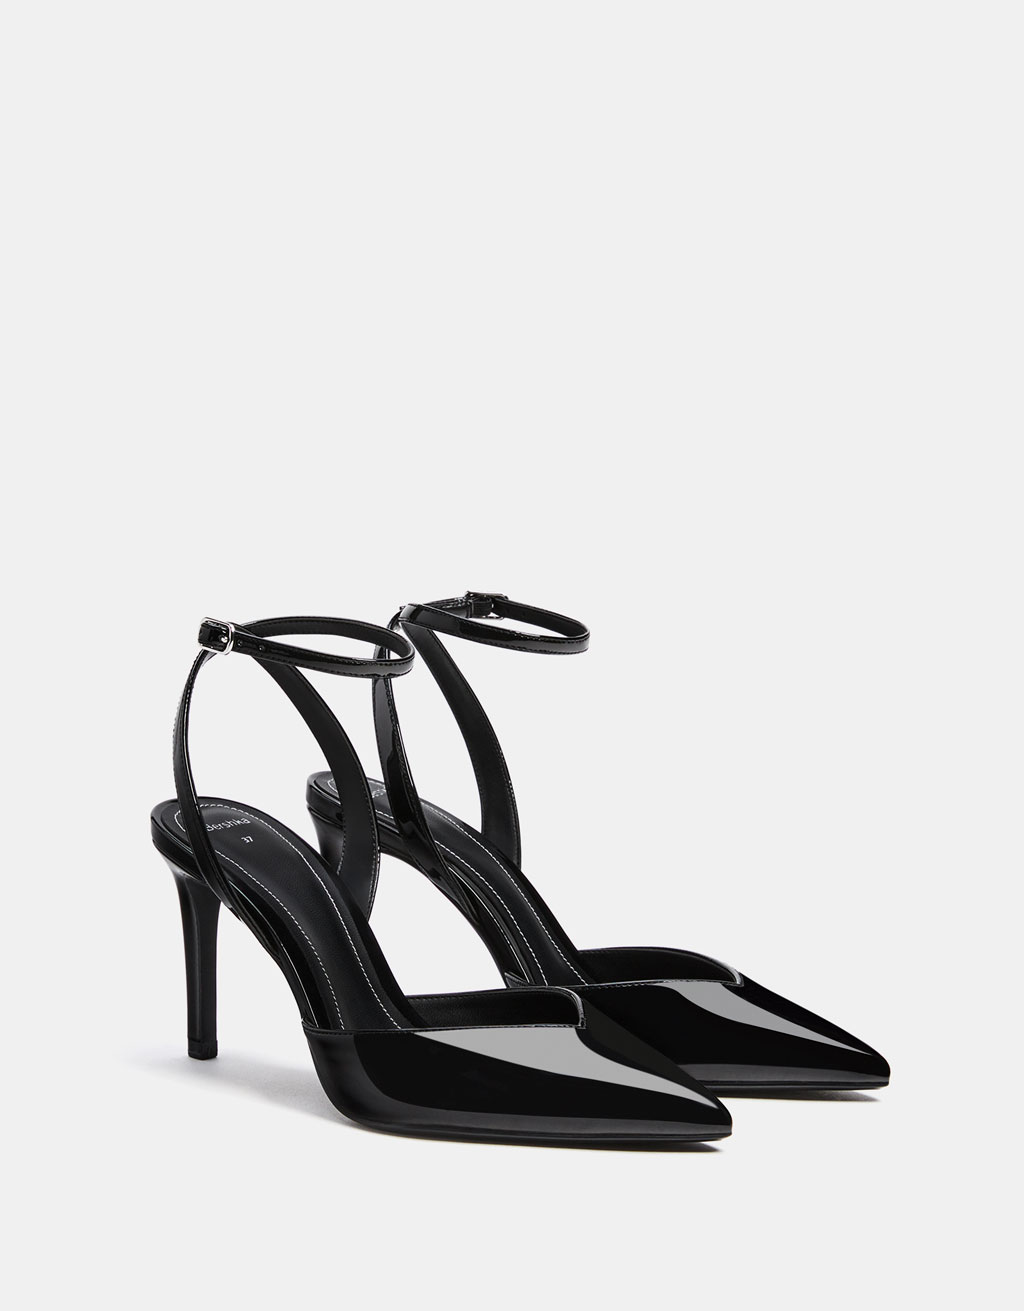 Faux patent leather slingback shoes